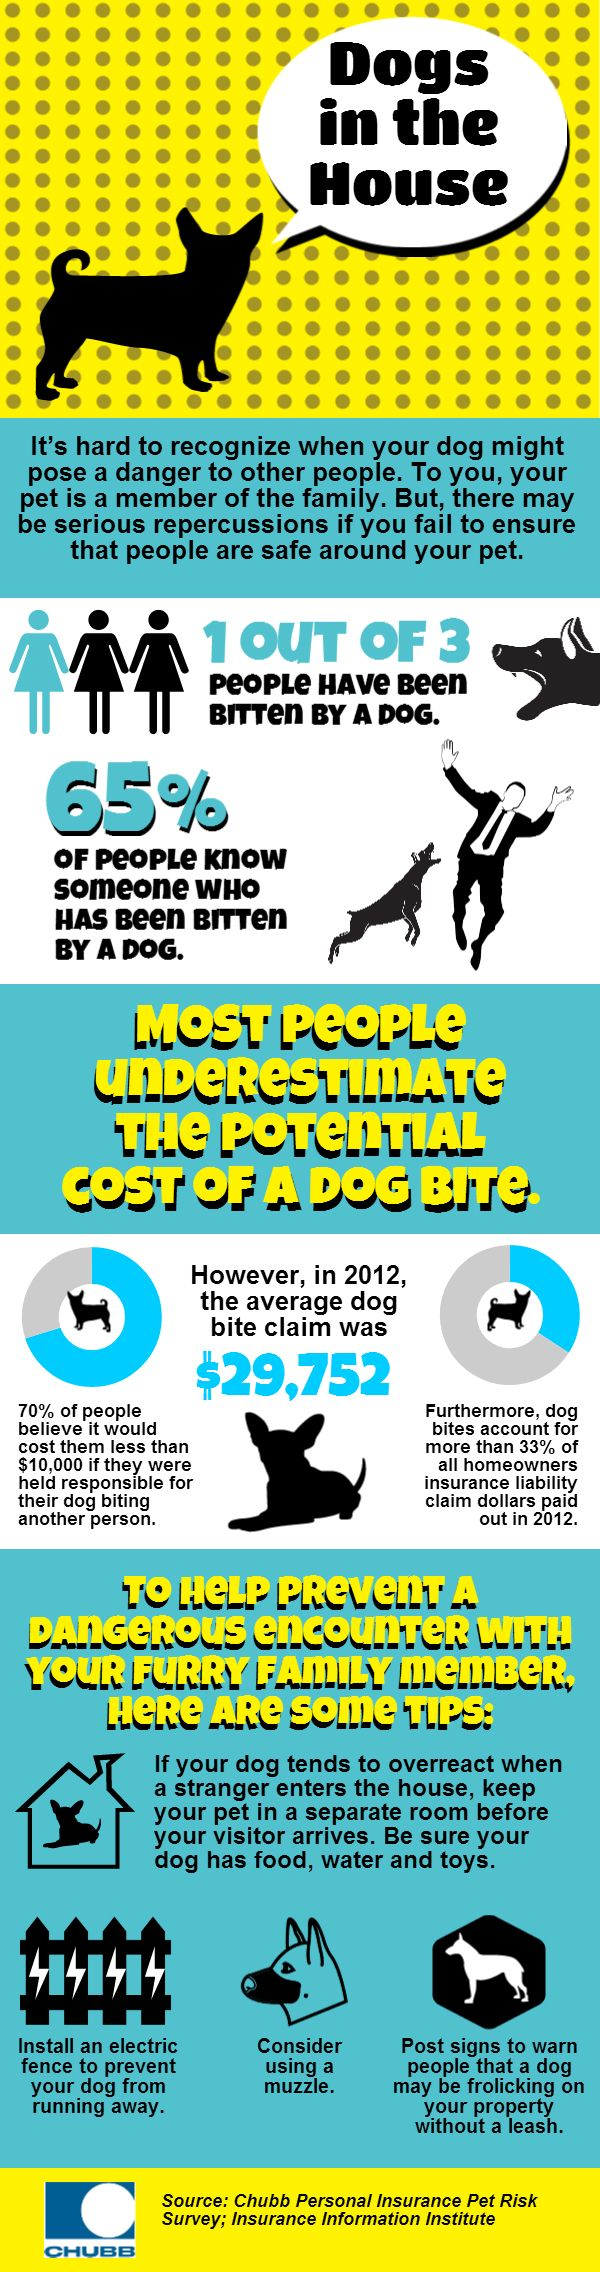 Cpi Pets Infographic Updated 8 21 13 Dogs Animal Infographic Pets